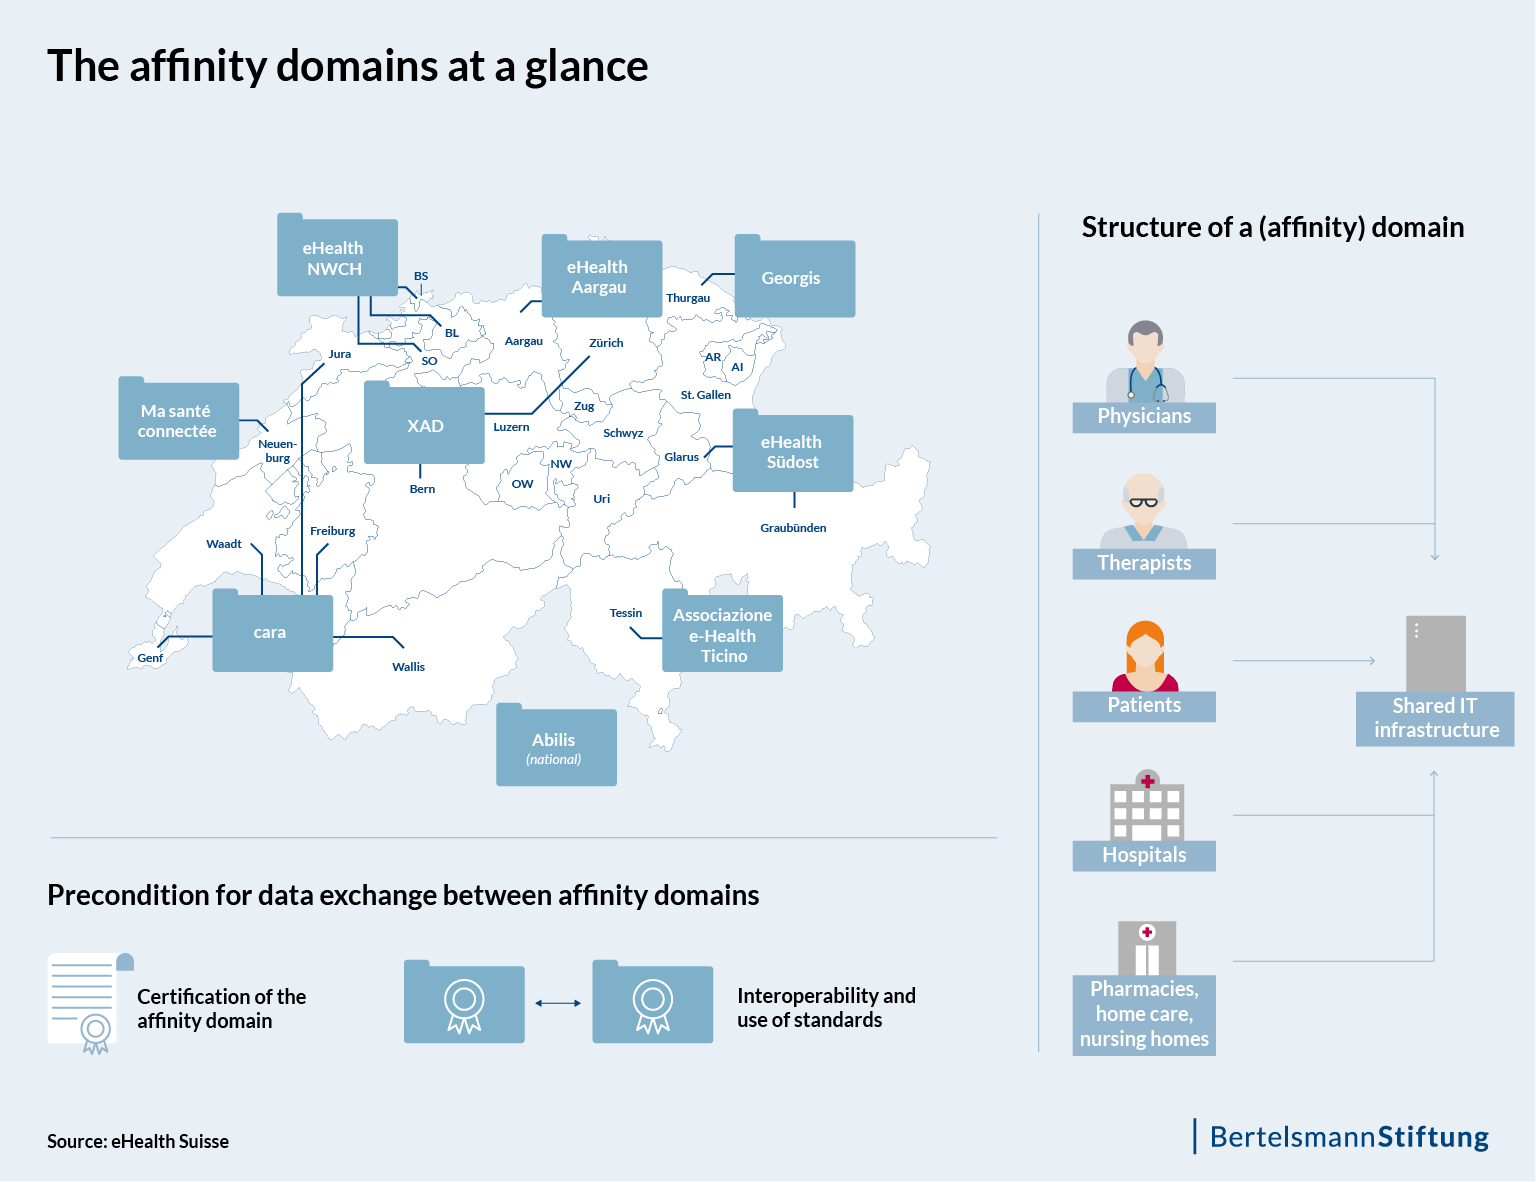 Overview of the affinity domains